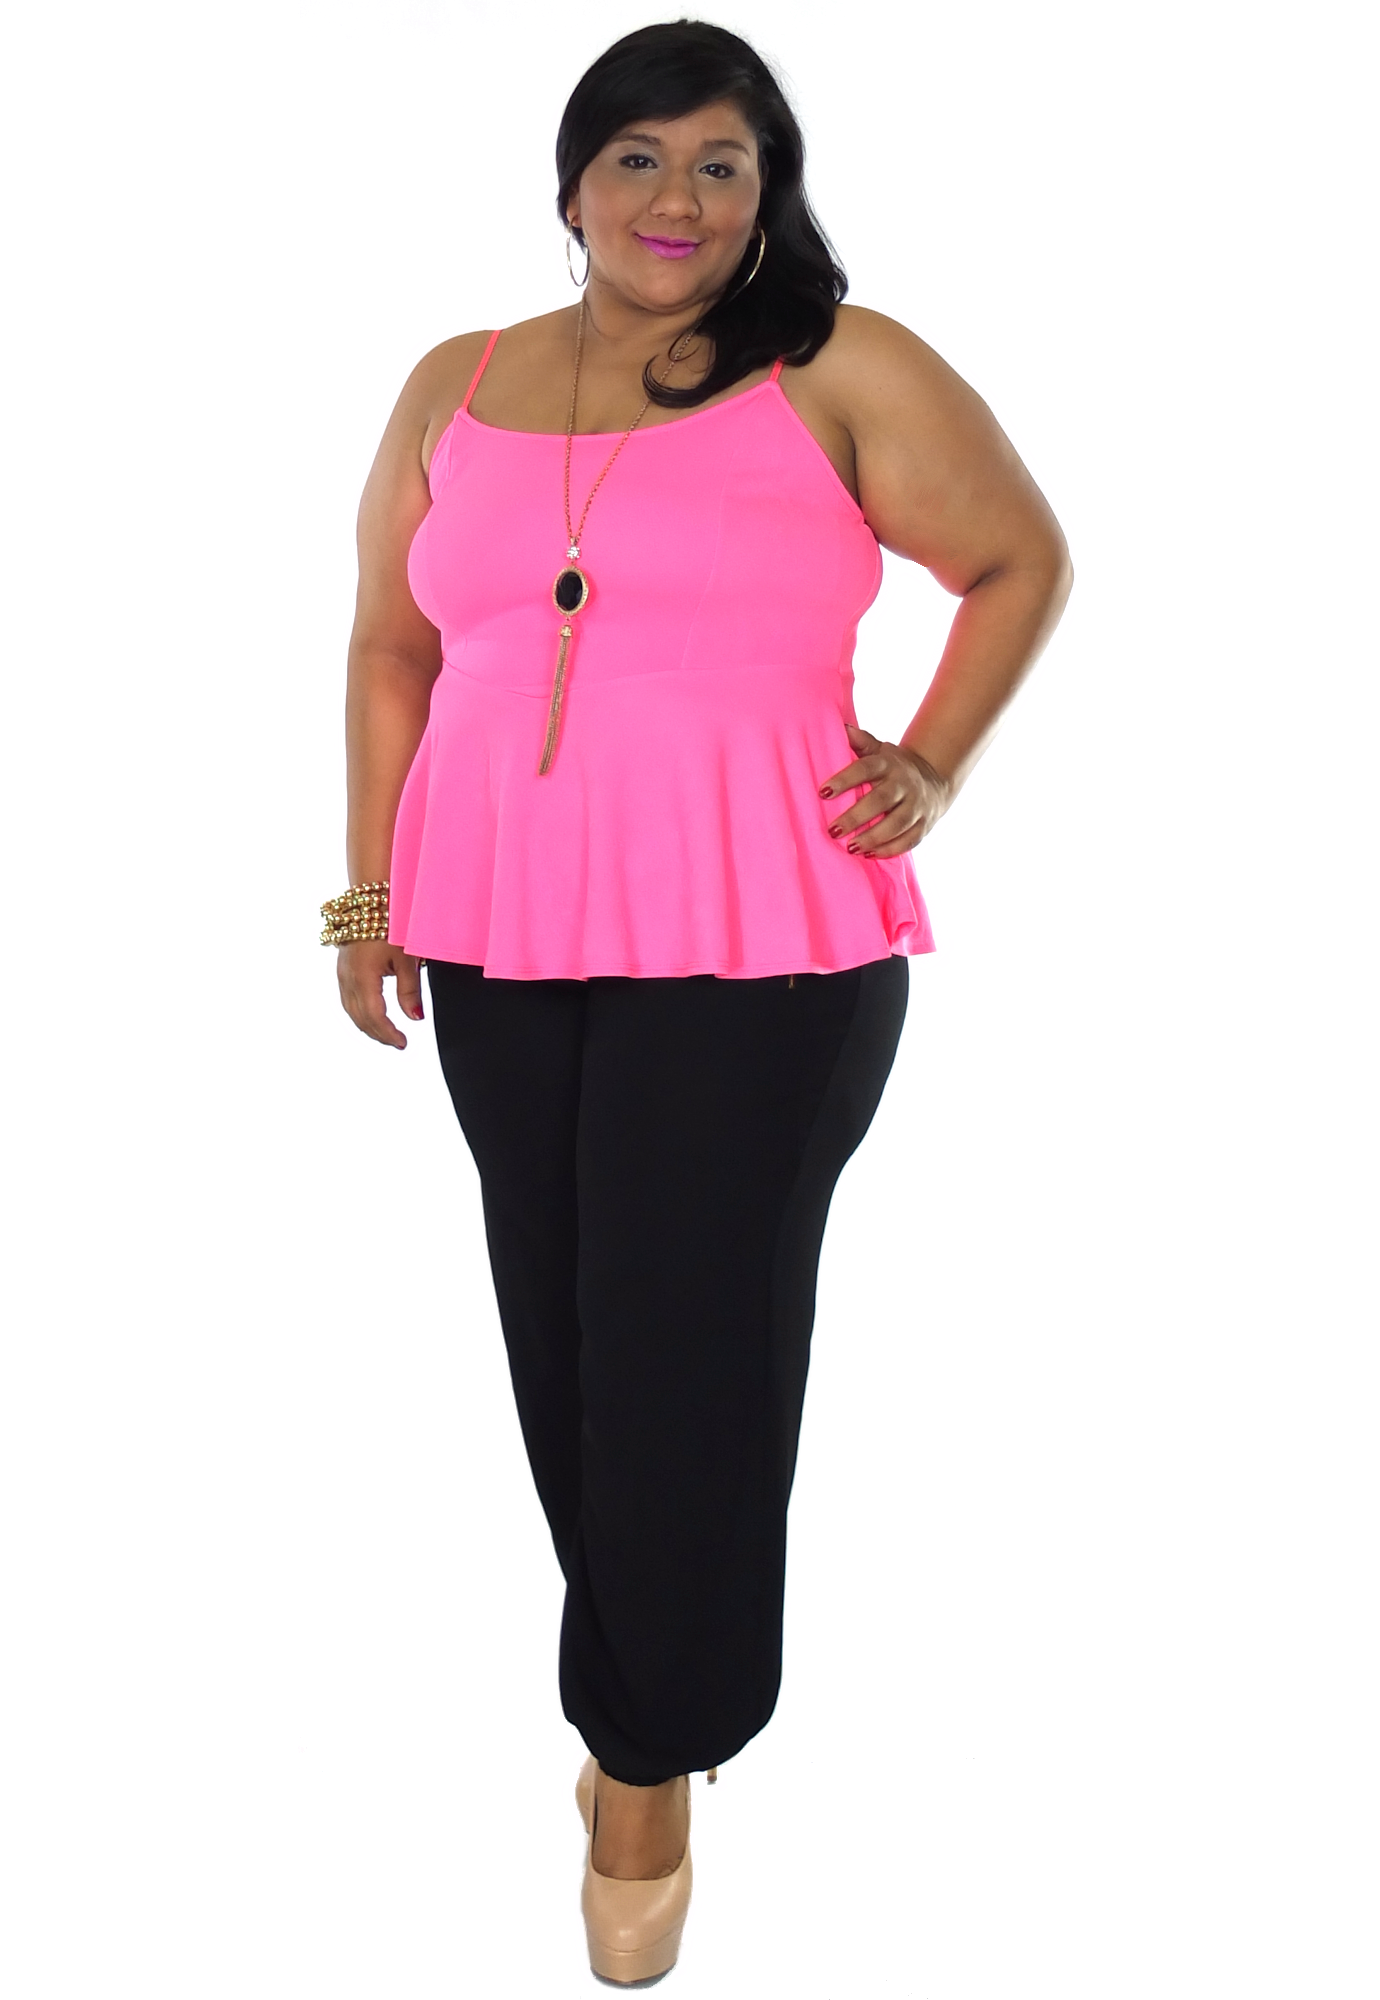 plus size lula top in fushia from elohai plus size boutique | plus